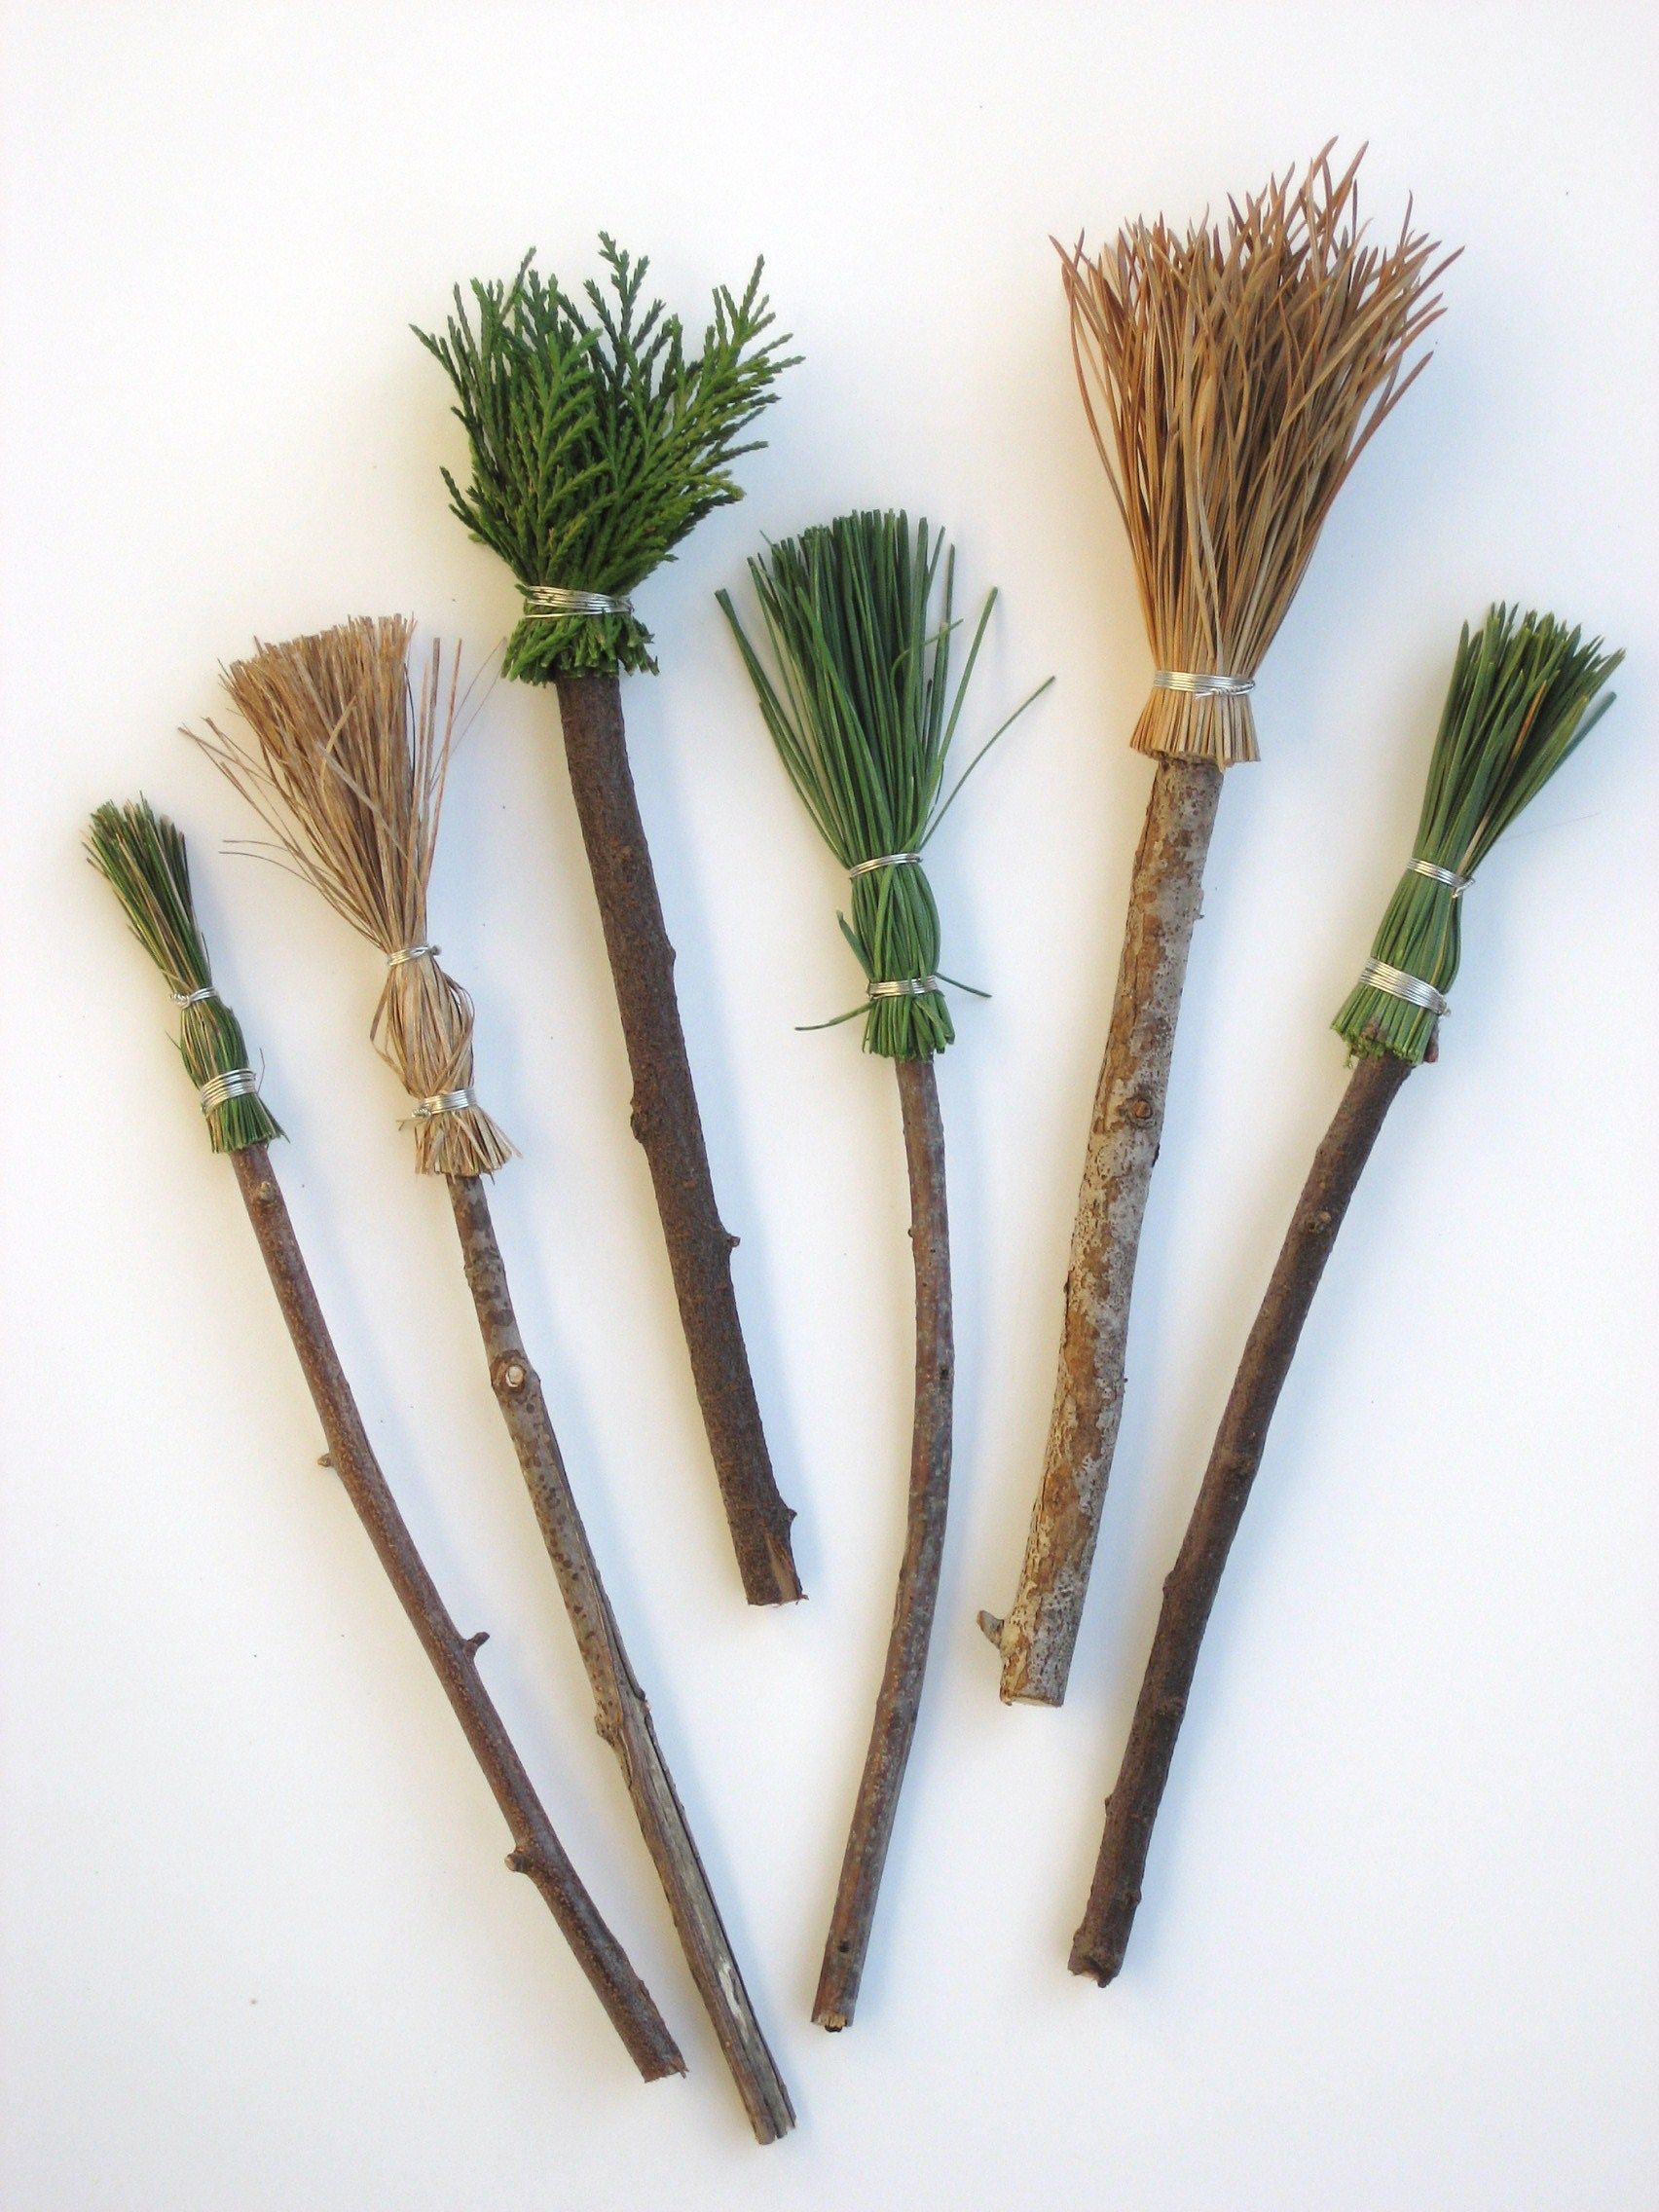 Making Paintbrushes with Natural Materials | Doodl